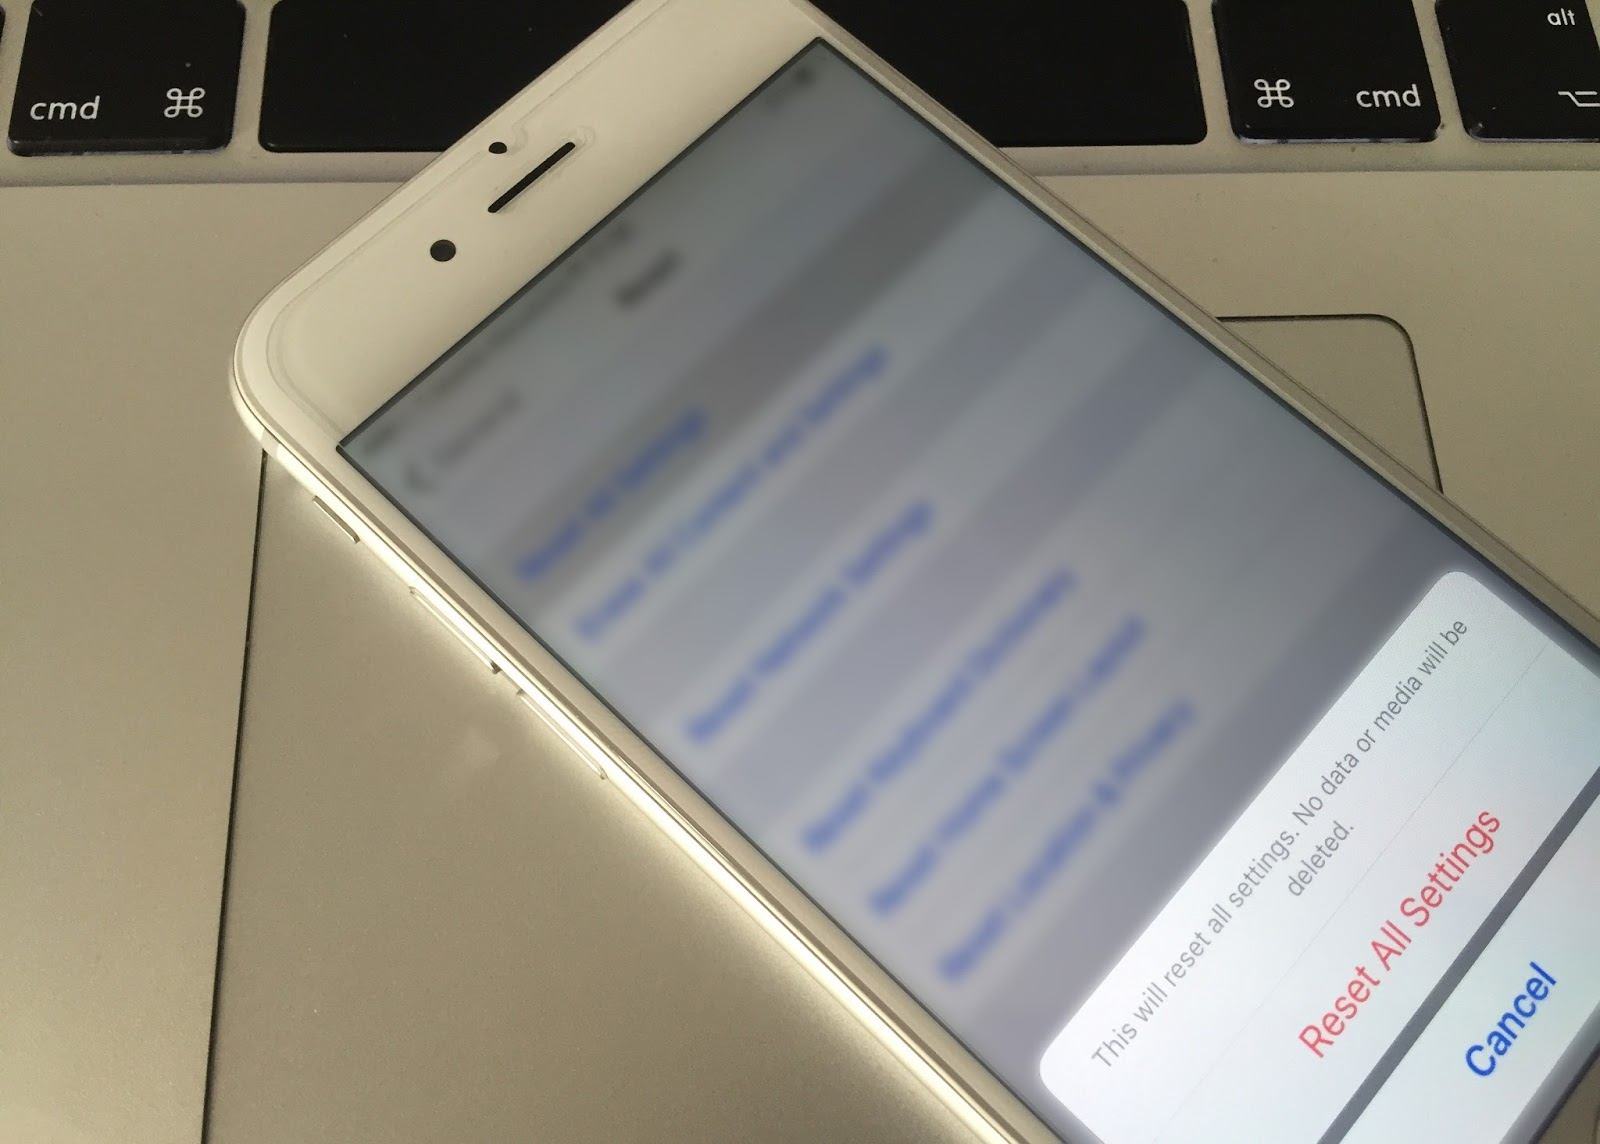 How to unlock iphone if screen is not working